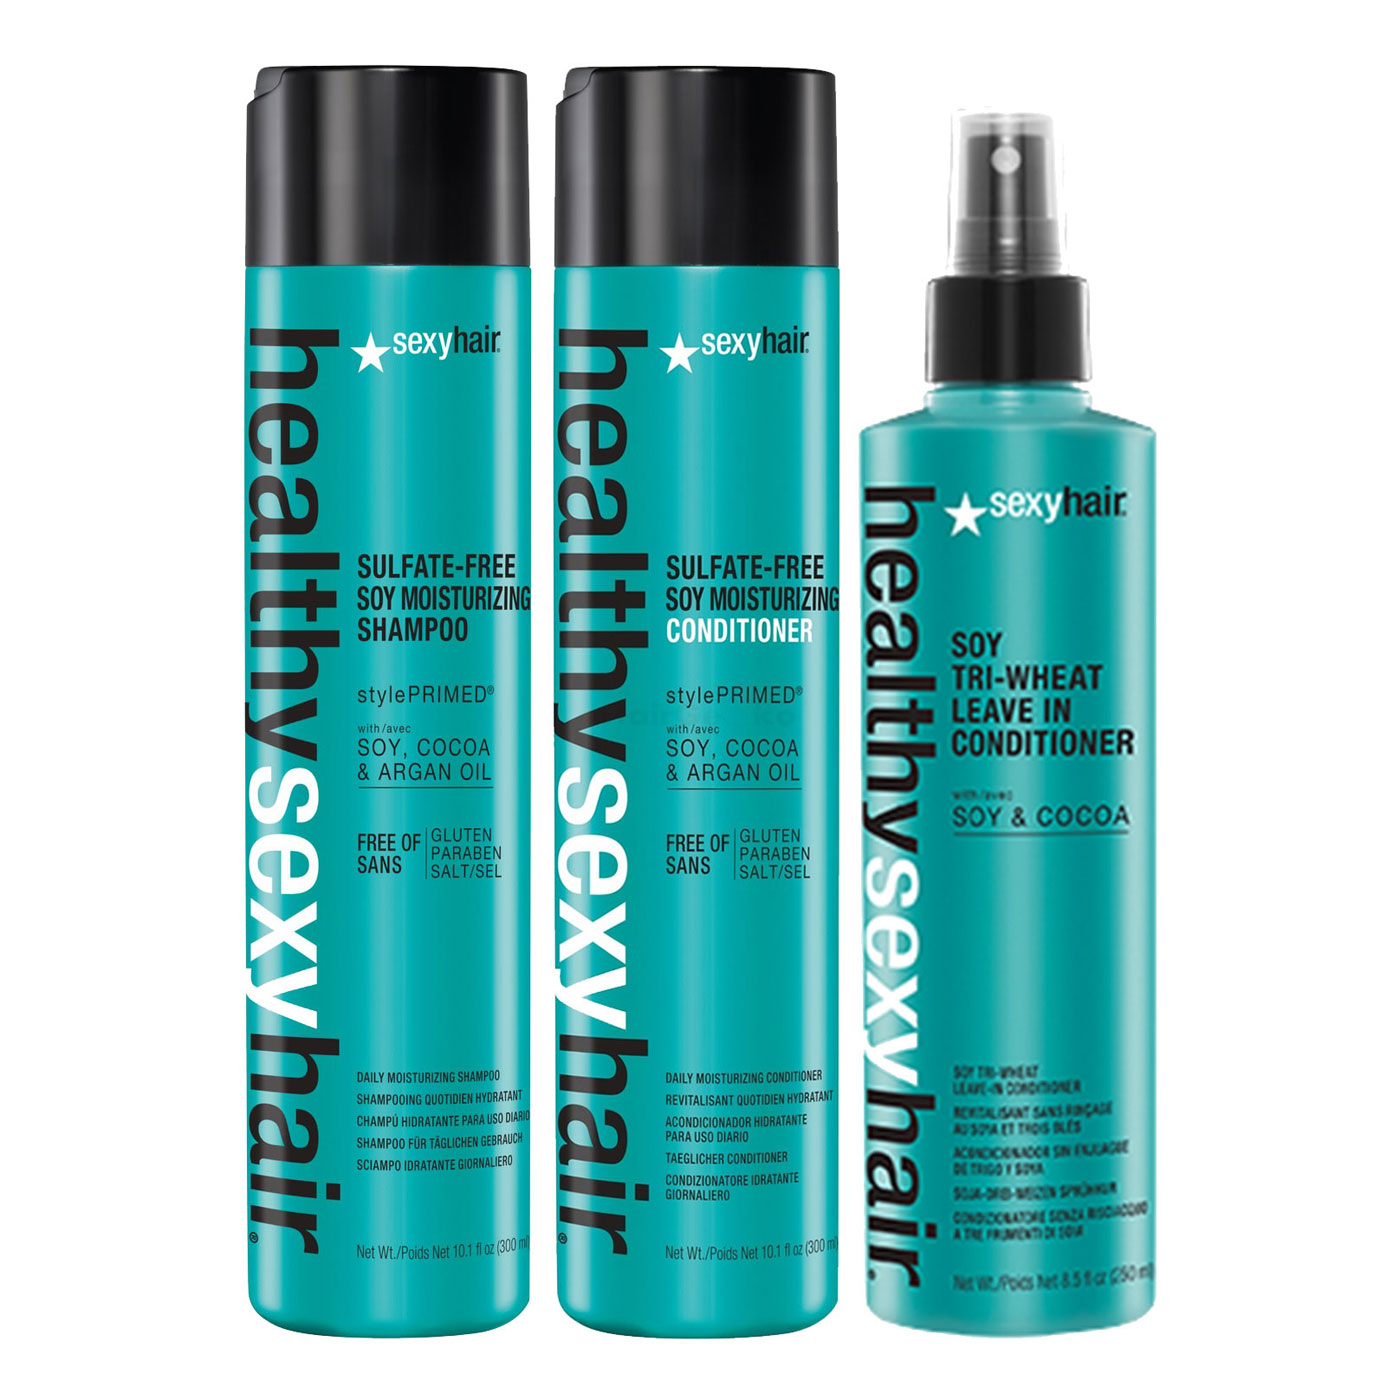 Sexy Hair Healthy Set - Soy Moisturizing Shampoo 300ml + Soy Moisturizing Conditioner 300ml + Soy Tri Wheat Leave-In Conditioner 250ml = 500ml